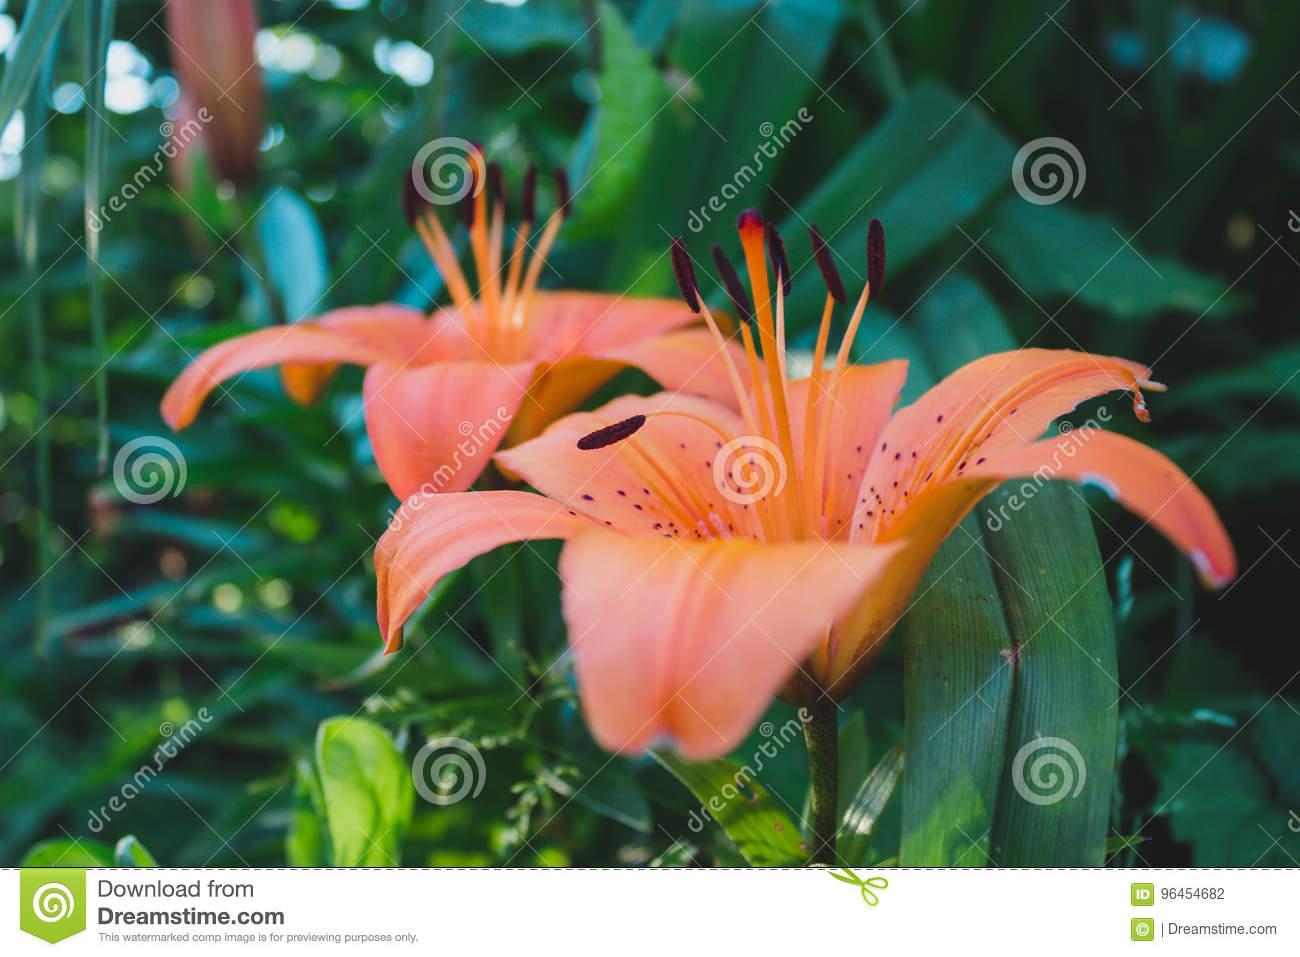 Tropical lily flowers stock photo image of flower nature 96454682 download tropical lily flowers stock photo image of flower nature 96454682 izmirmasajfo